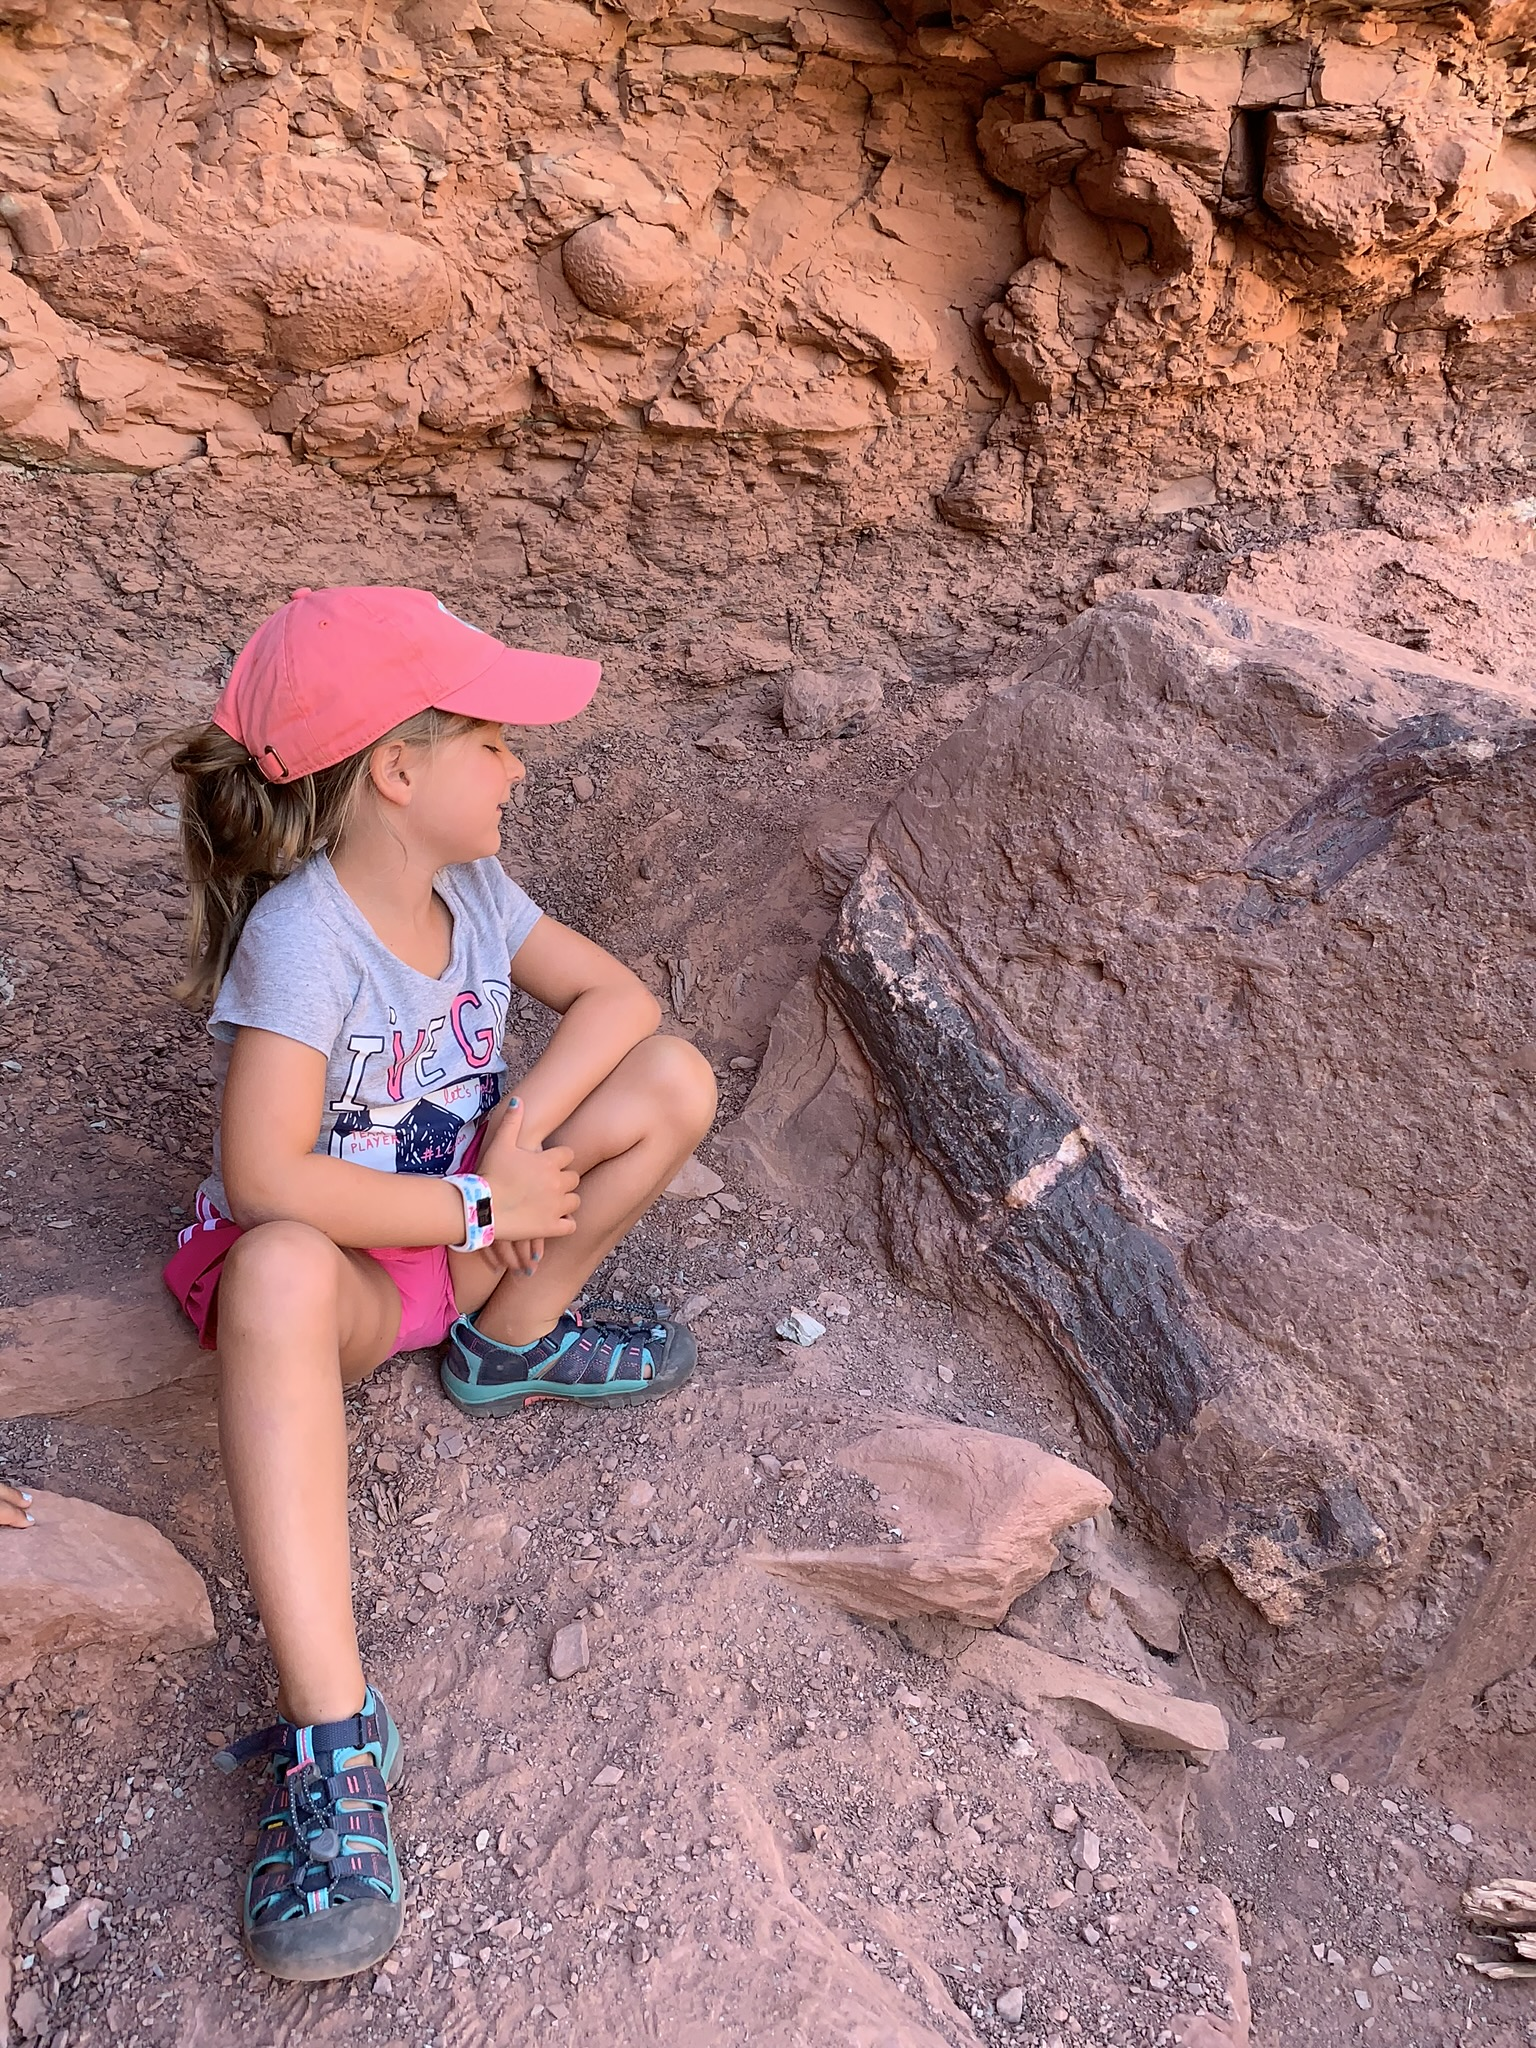 """Favorite FAct they learned - Mackenzie-""""How long ago the land was created and that Canyonlands still has so much salt."""" Hailey-""""What kind of animals live in each park. I liked finding different lizards. AND finding real dinosaur bones and shell fossils."""""""